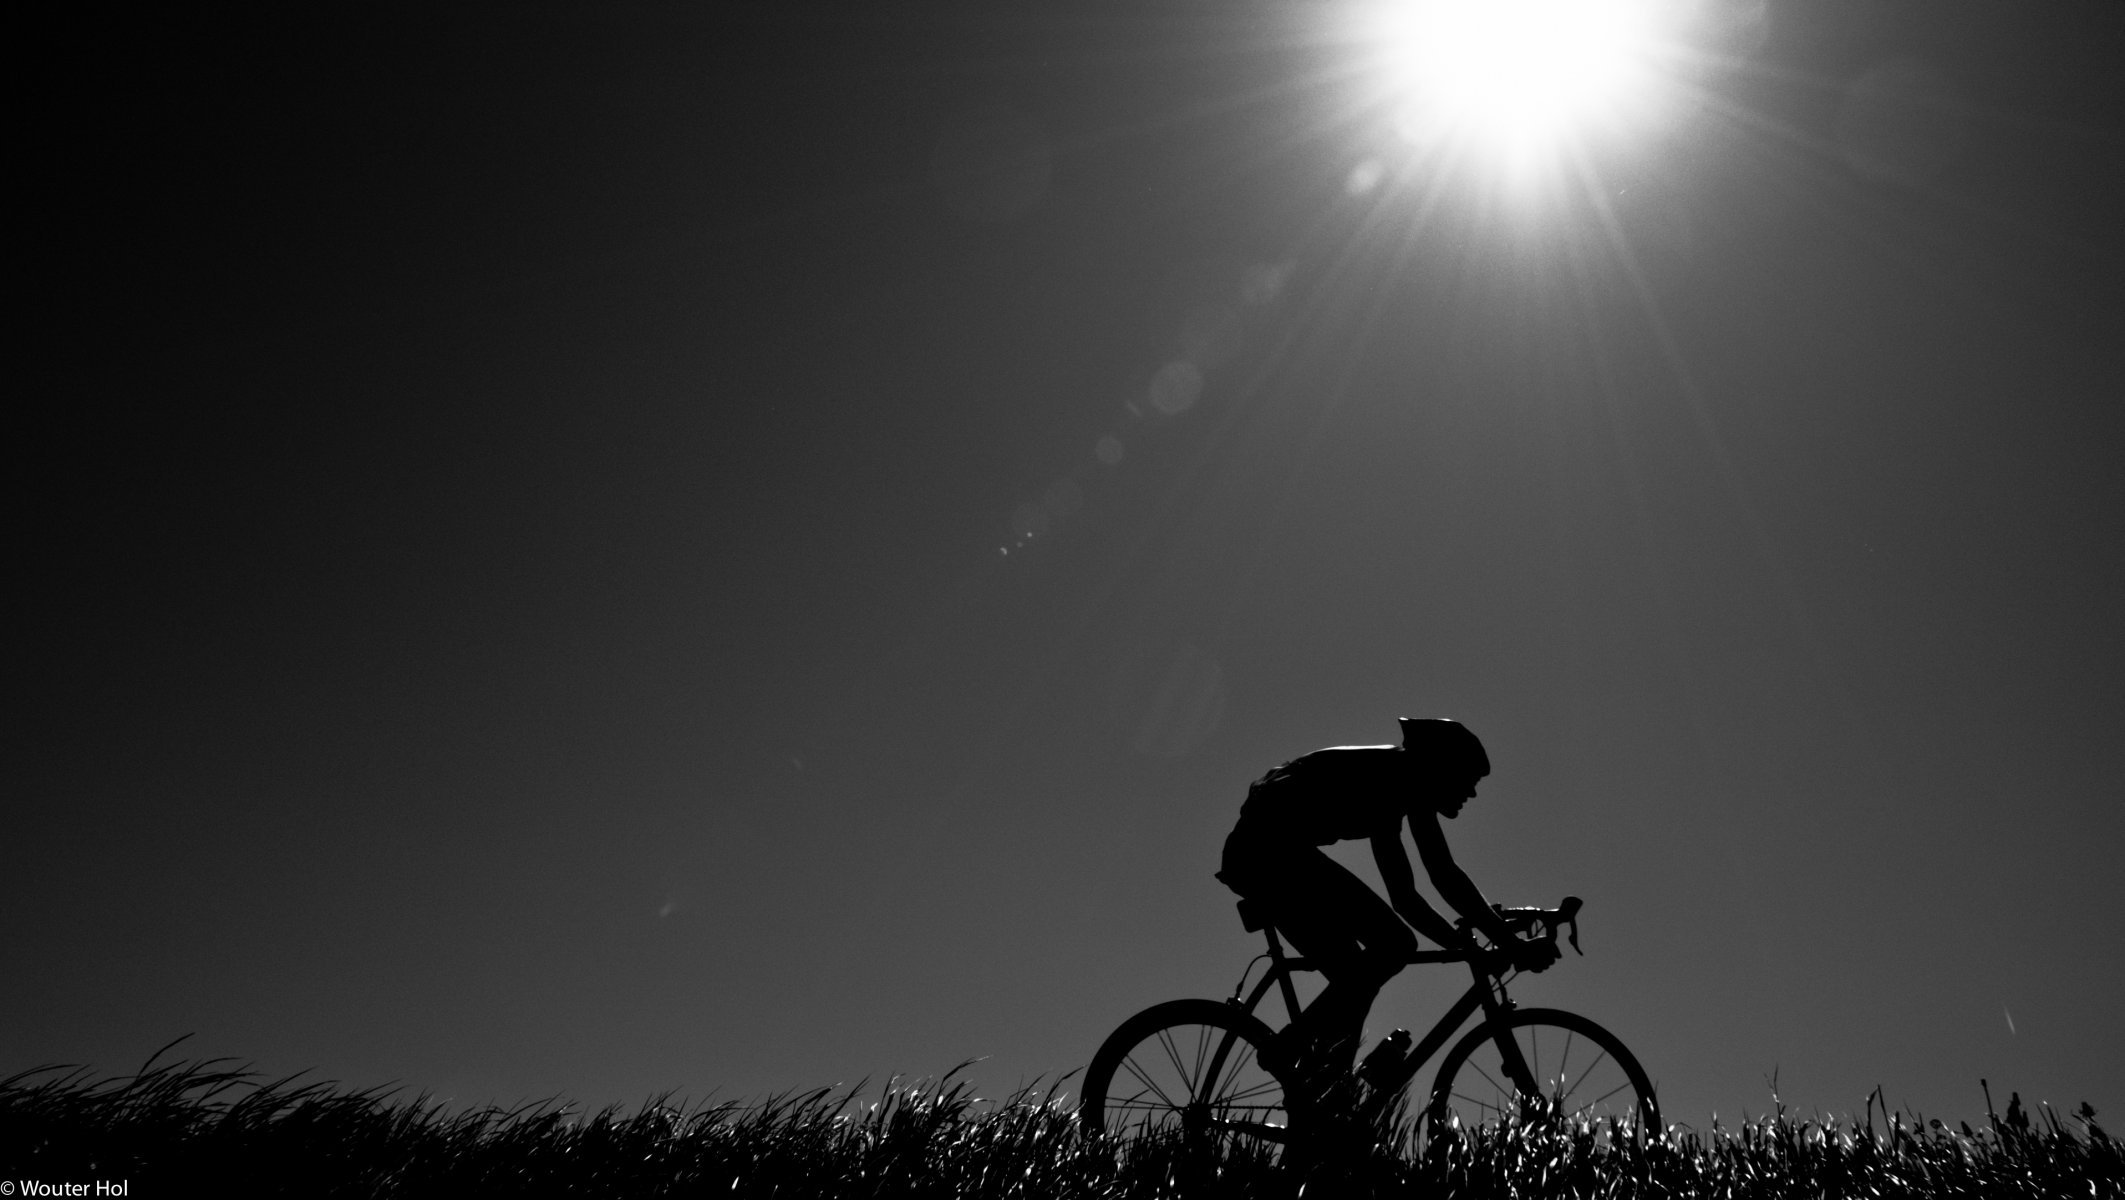 Road Bike Wallpaper Road Bike Wallpaper 4k 2125x1200 Wallpaper Teahub Io